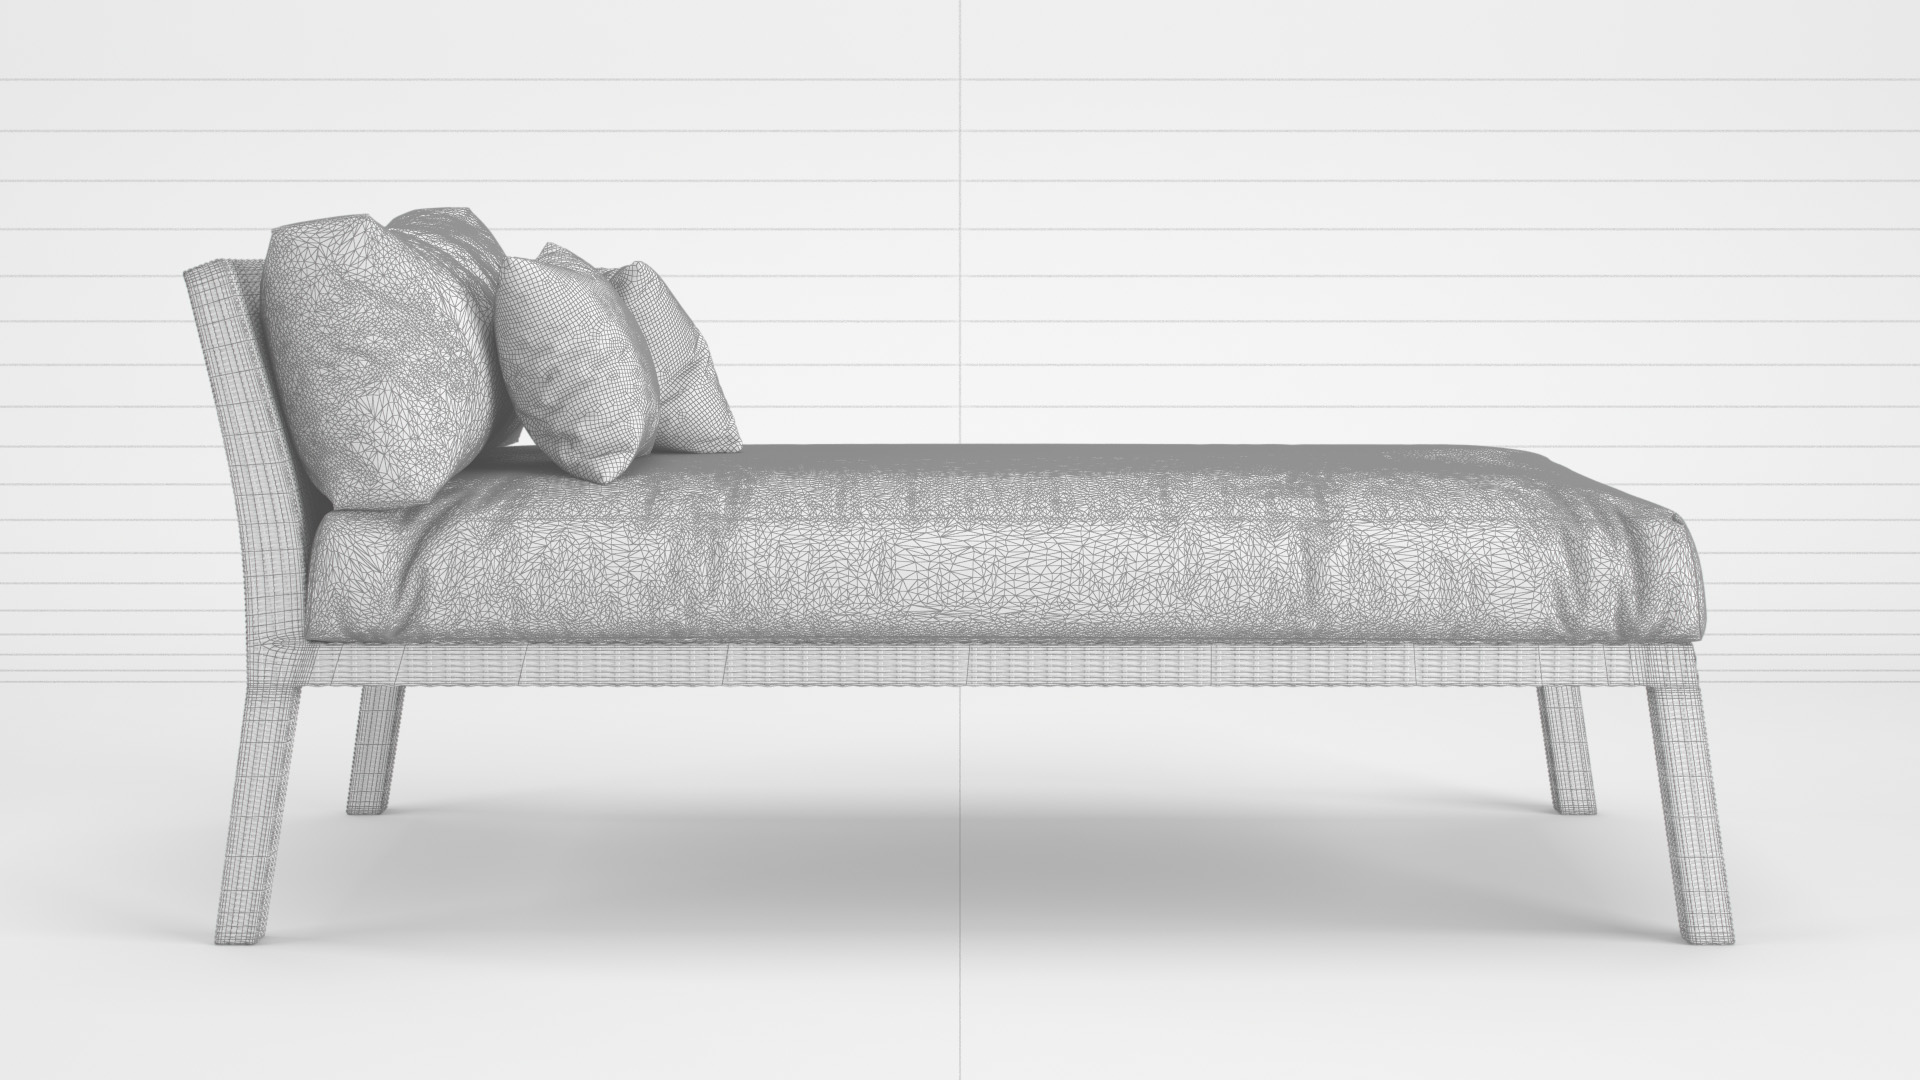 Versus_Lounger_WhiteSet_01_wire_0001